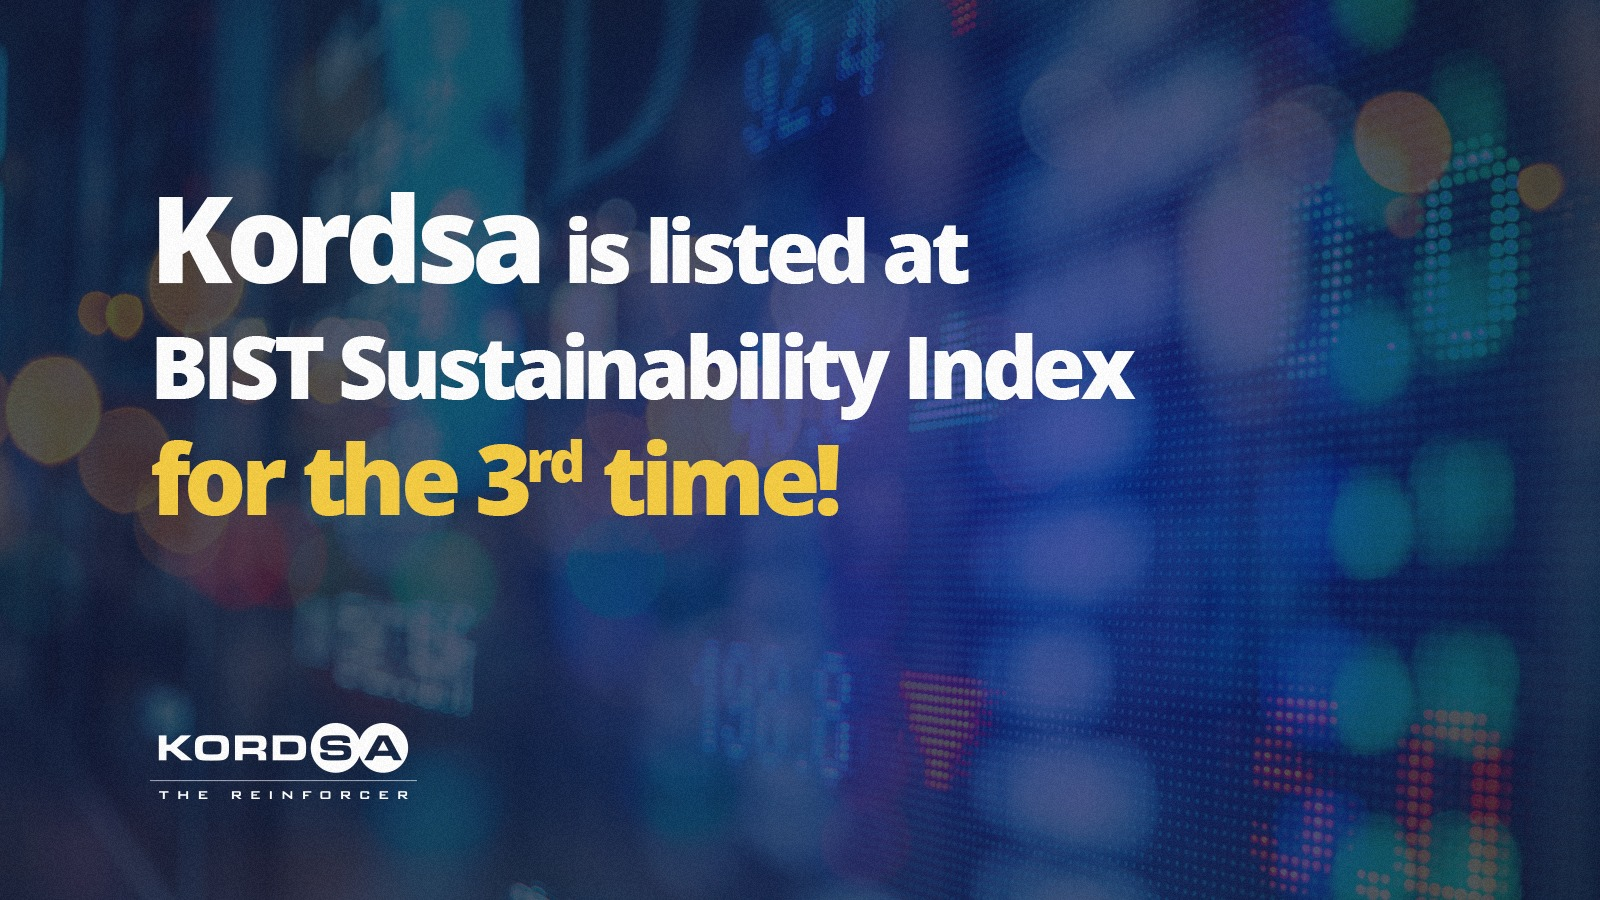 Kordsa is listed in BIST Sustainability Index for the third consecutive year with improved rankings